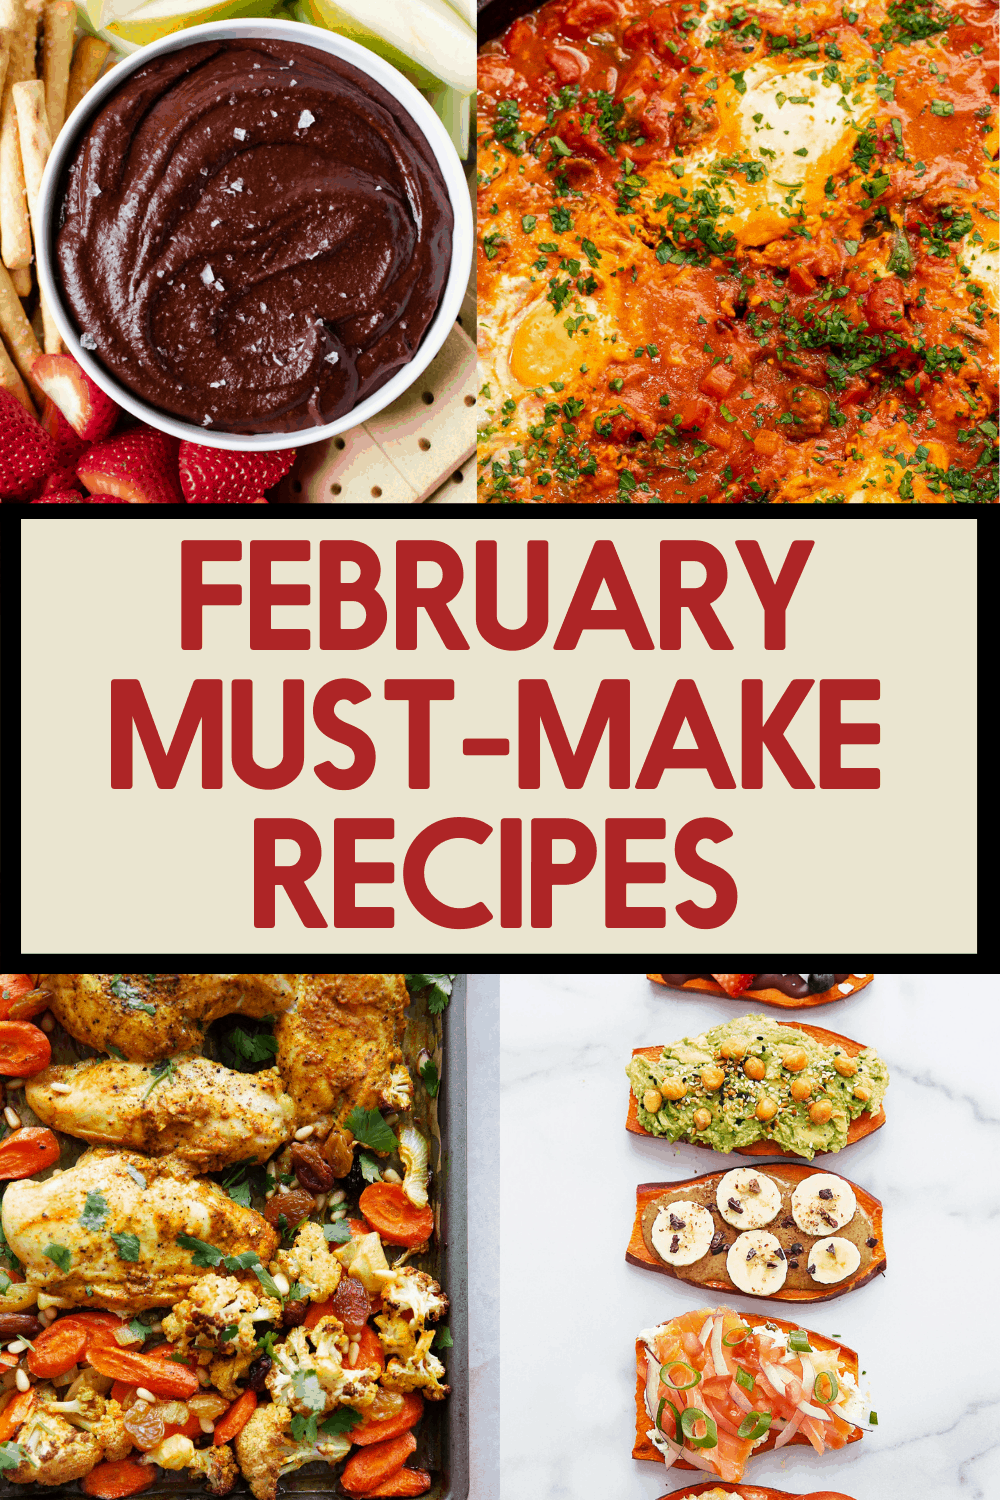 Dishes that are good to make in February.